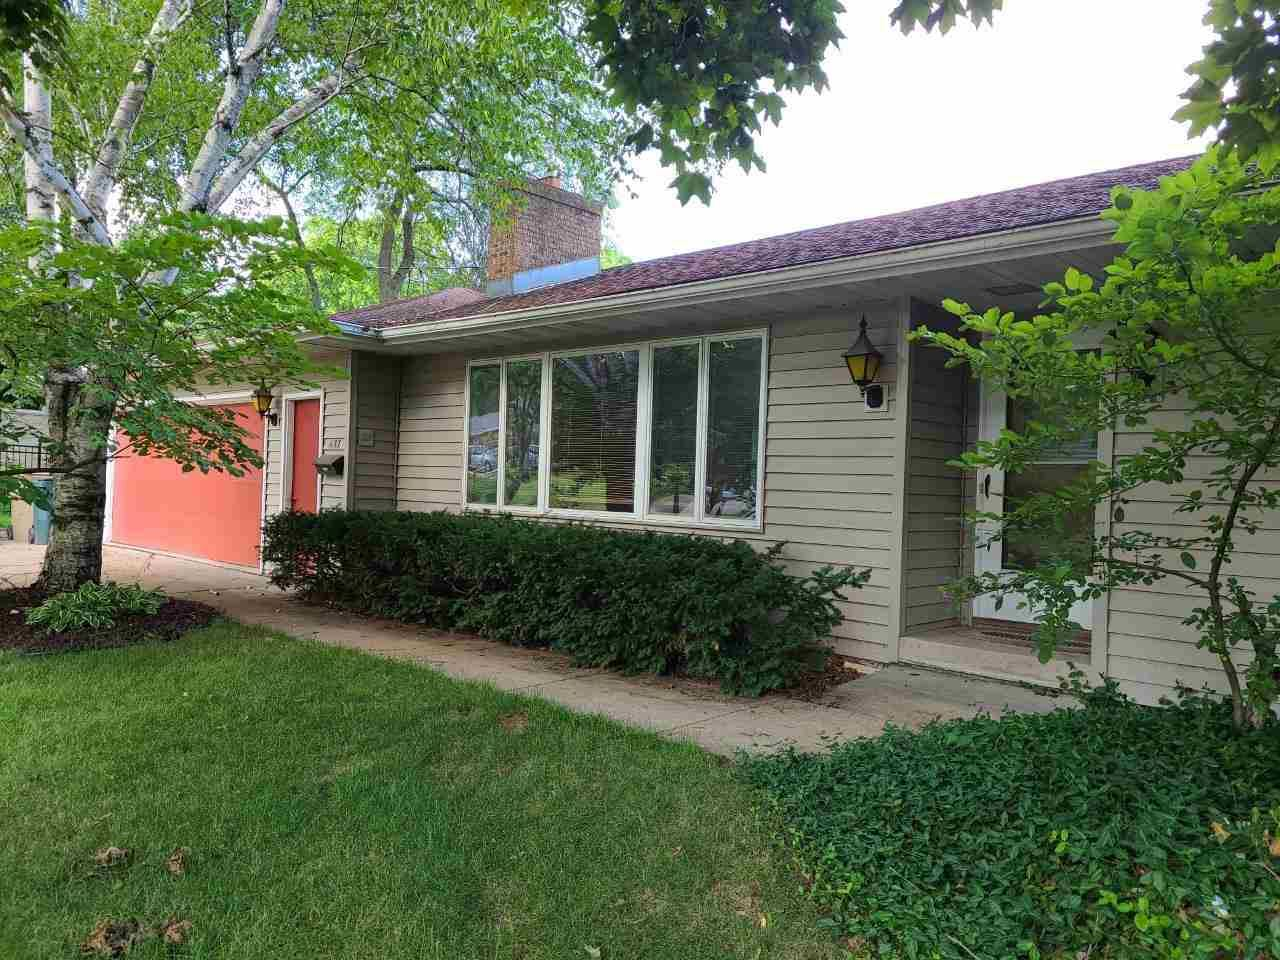 637 Odell St, Madison, WI 53711 - #: 1915208